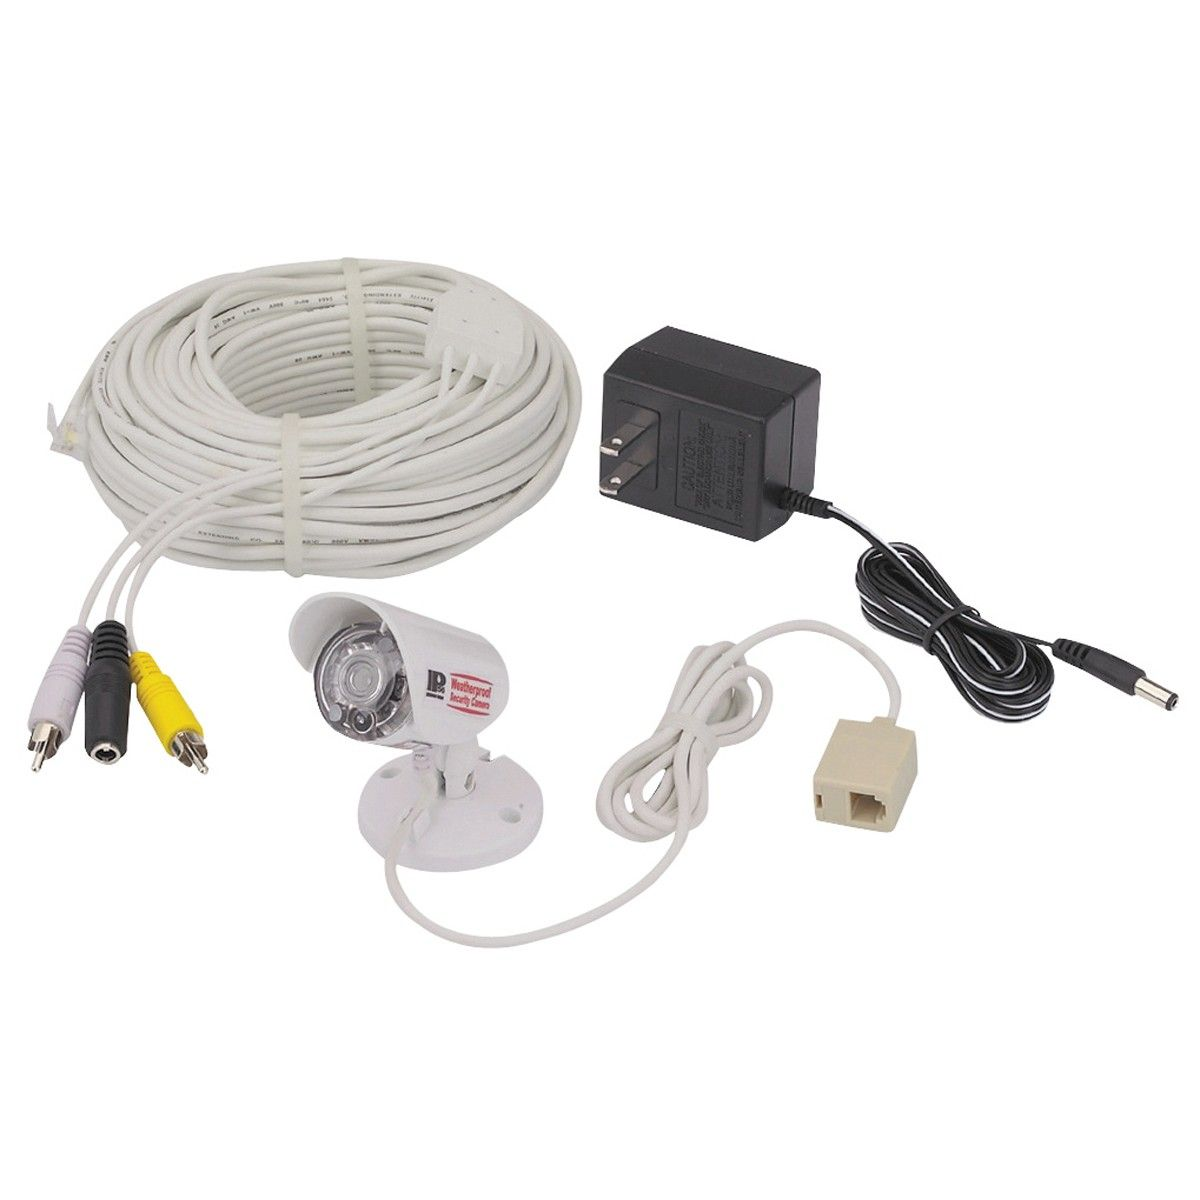 12b106b23c96b31c51c98e896bc722eb harbor freight security camera 47546 wiring diagram are you sony security camera wiring diagram at webbmarketing.co